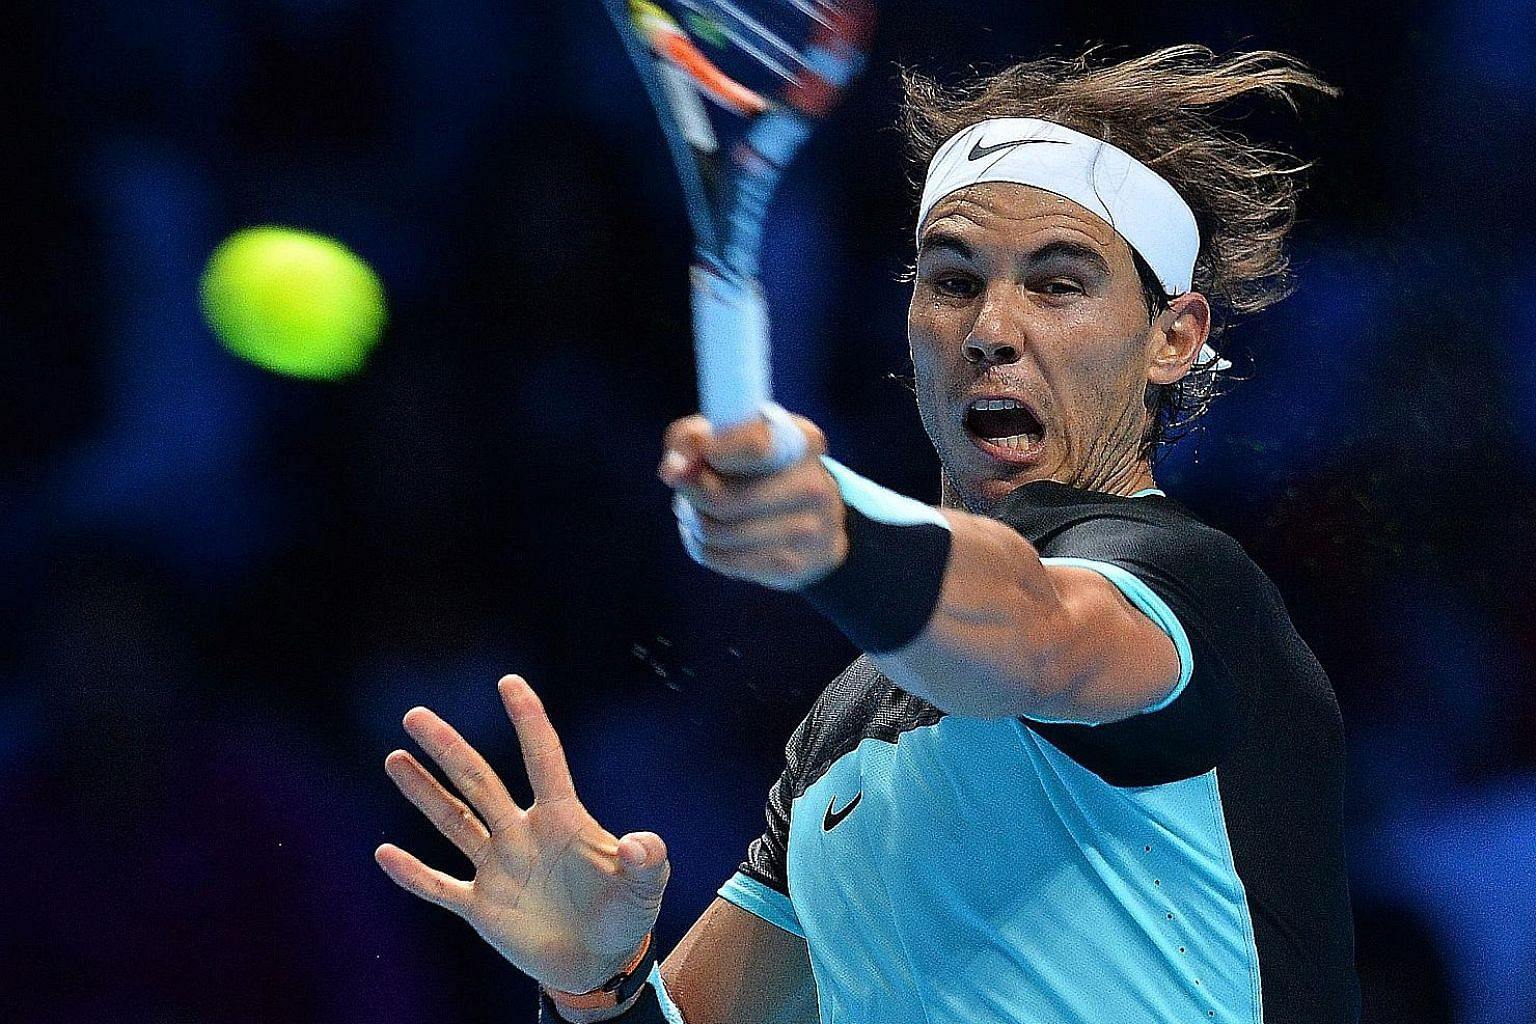 Rafael Nadal on his way to beating Stan Wawrinka 6-3, 6-2 in the ATP World Tour Finals on Monday. The resurgent Spaniard reached the finals in Beijing and Basel as well as the semi-finals in Shanghai. Now ranked world No. 5 after dropping to No. 10,